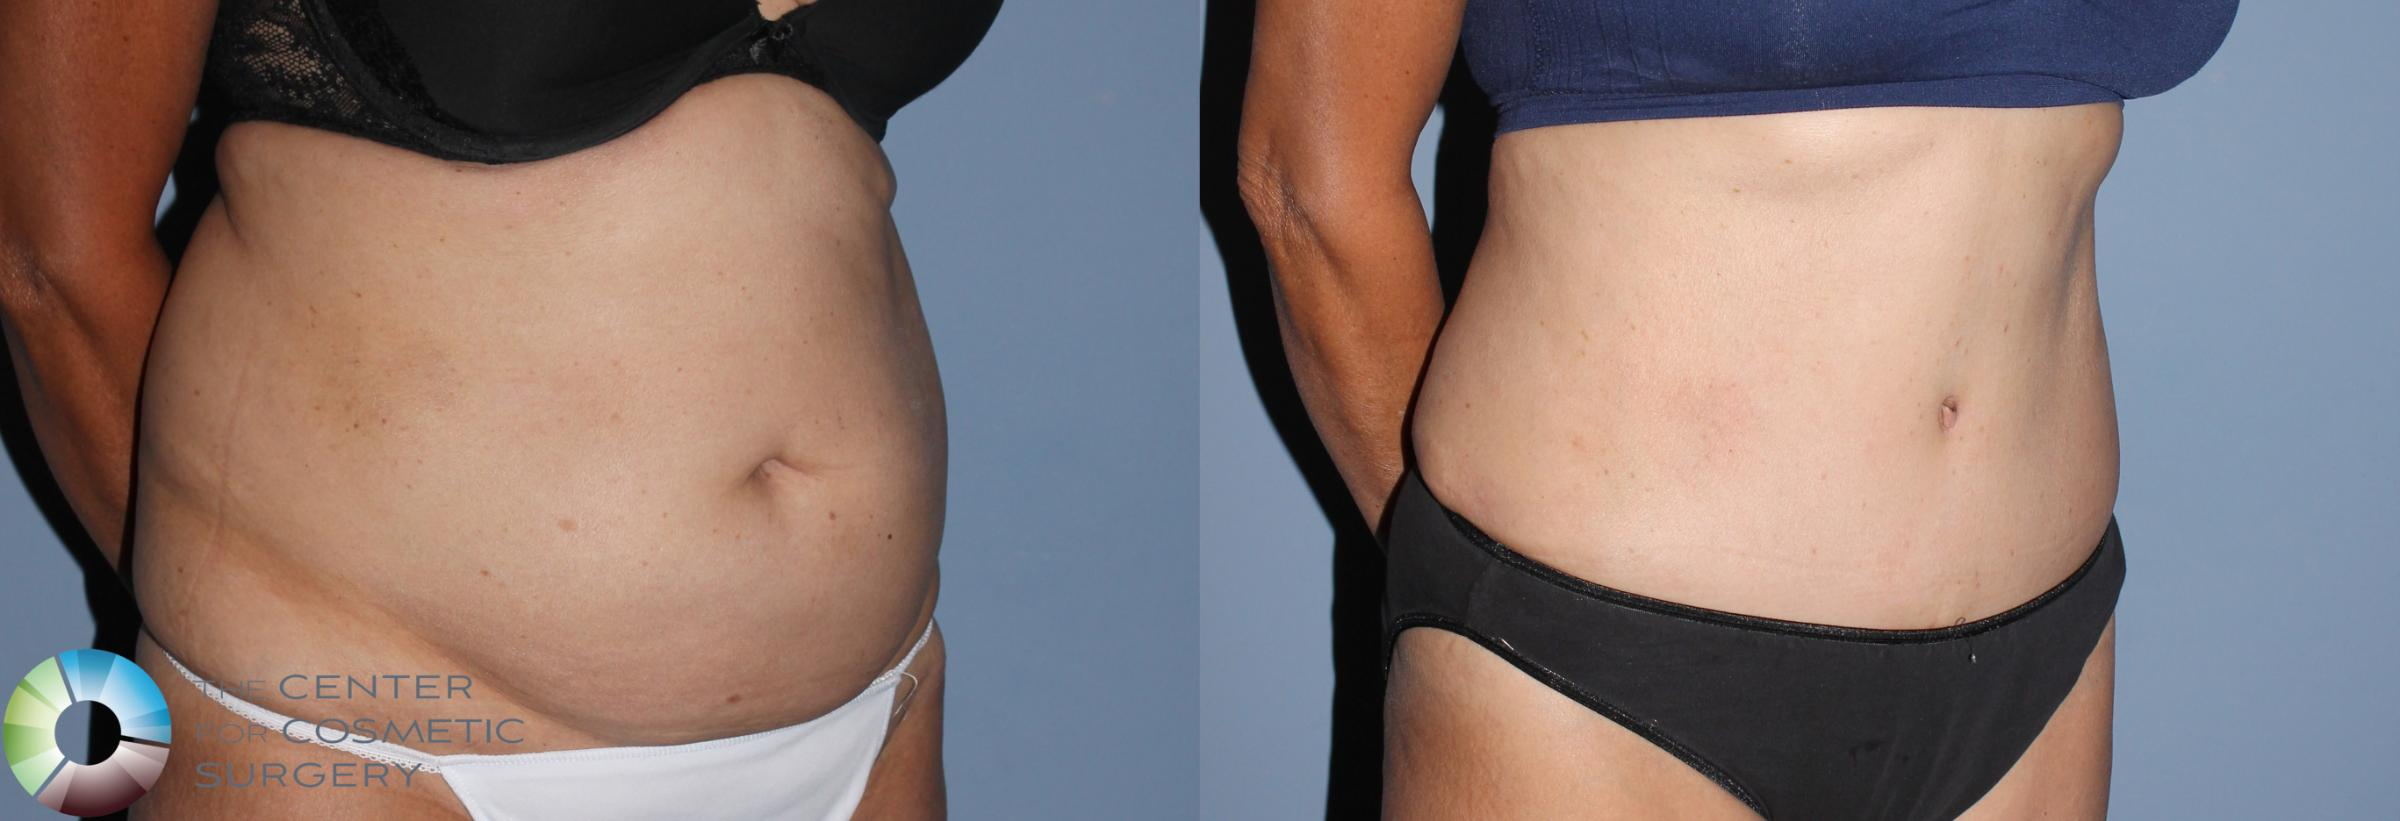 Tummy Tuck Case 795 Before & After View #3 | Golden, CO | The Center for Cosmetic Surgery